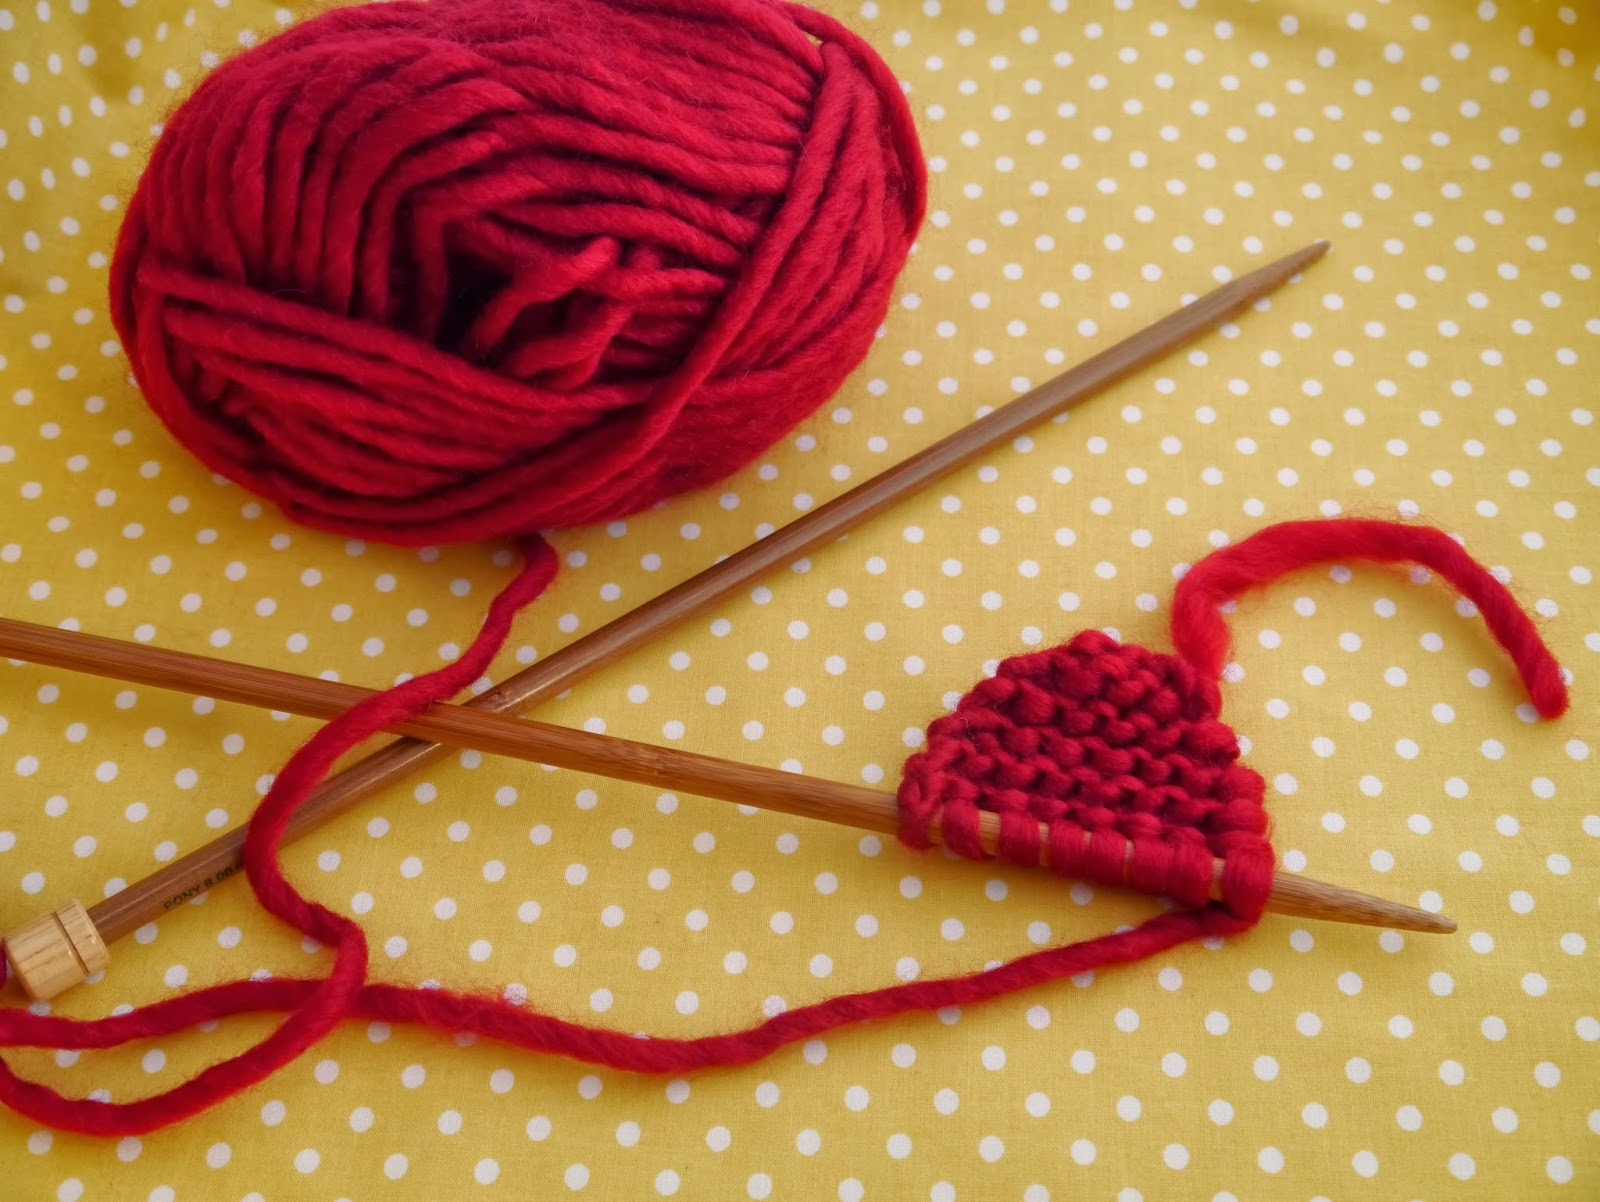 Knitting Hearts Together : Free pattern knitted heart julie the knits